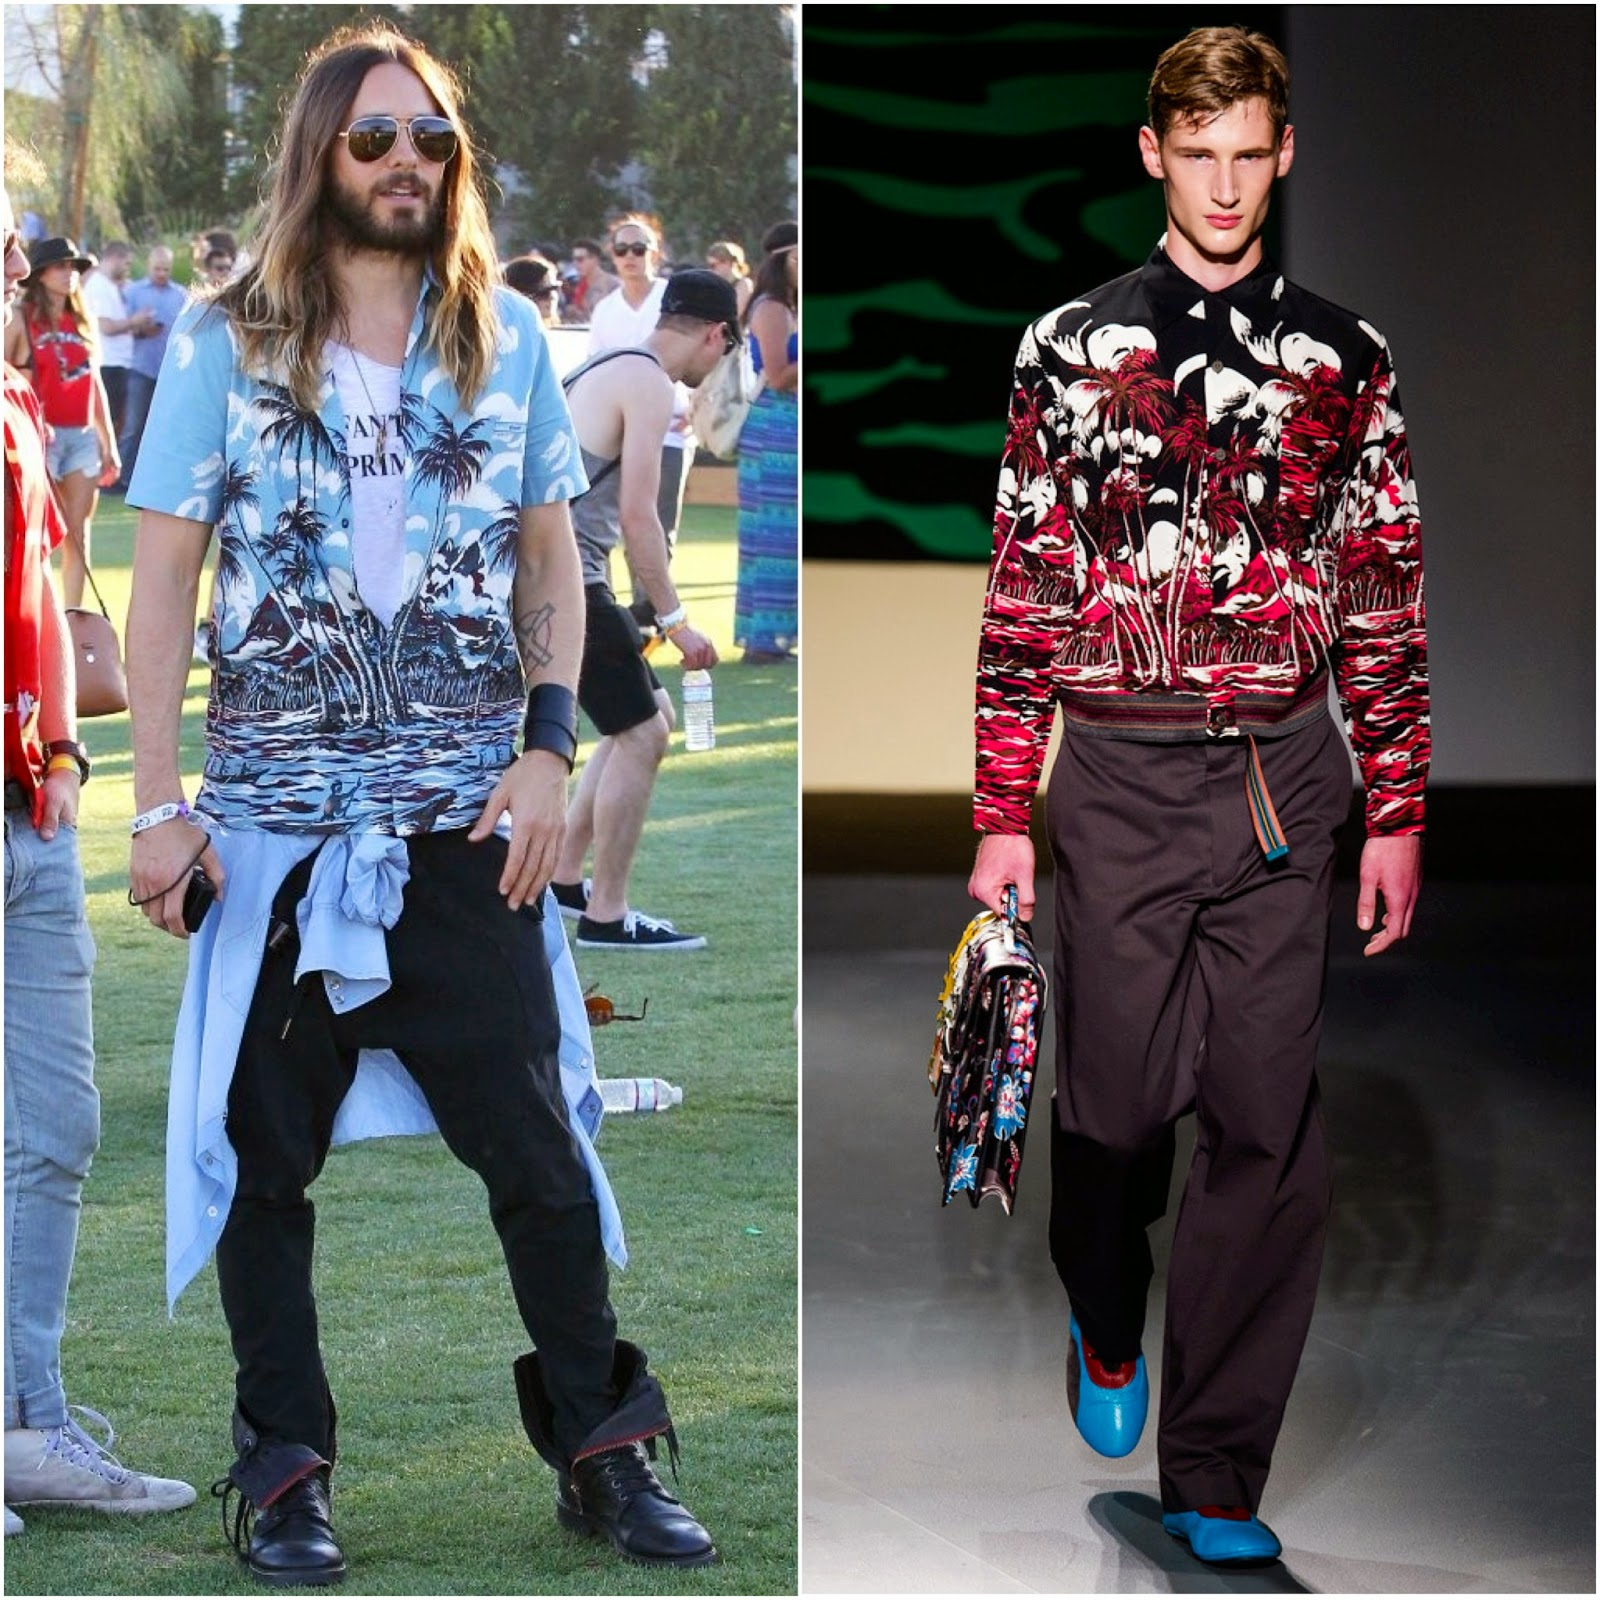 Jared Leto in Prada - 2014 Coachella Valley Music & Arts Festival